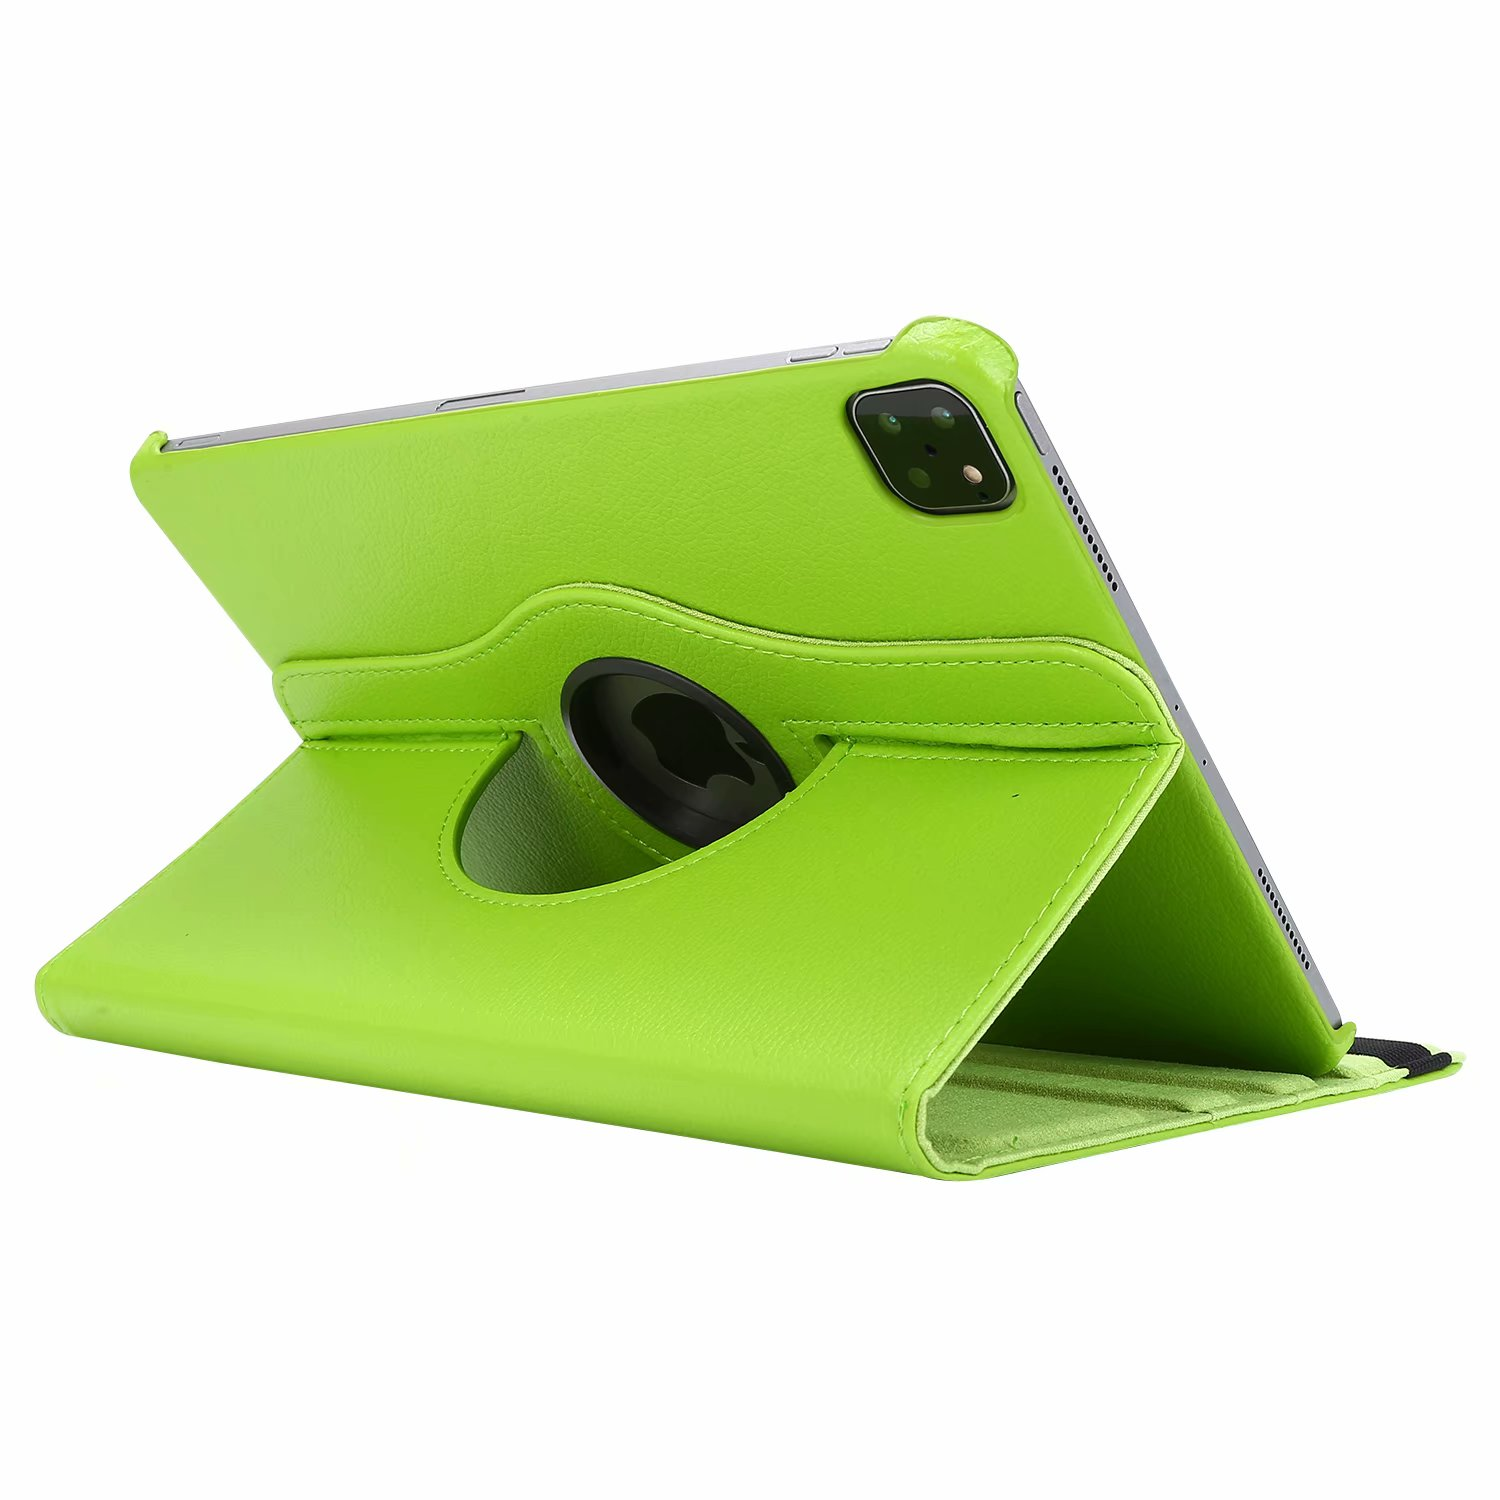 11 A2228 A2013 A2068 2021/2020/2018 Case for A1934 Cover Pro Degree A1980 A2230 360 iPad